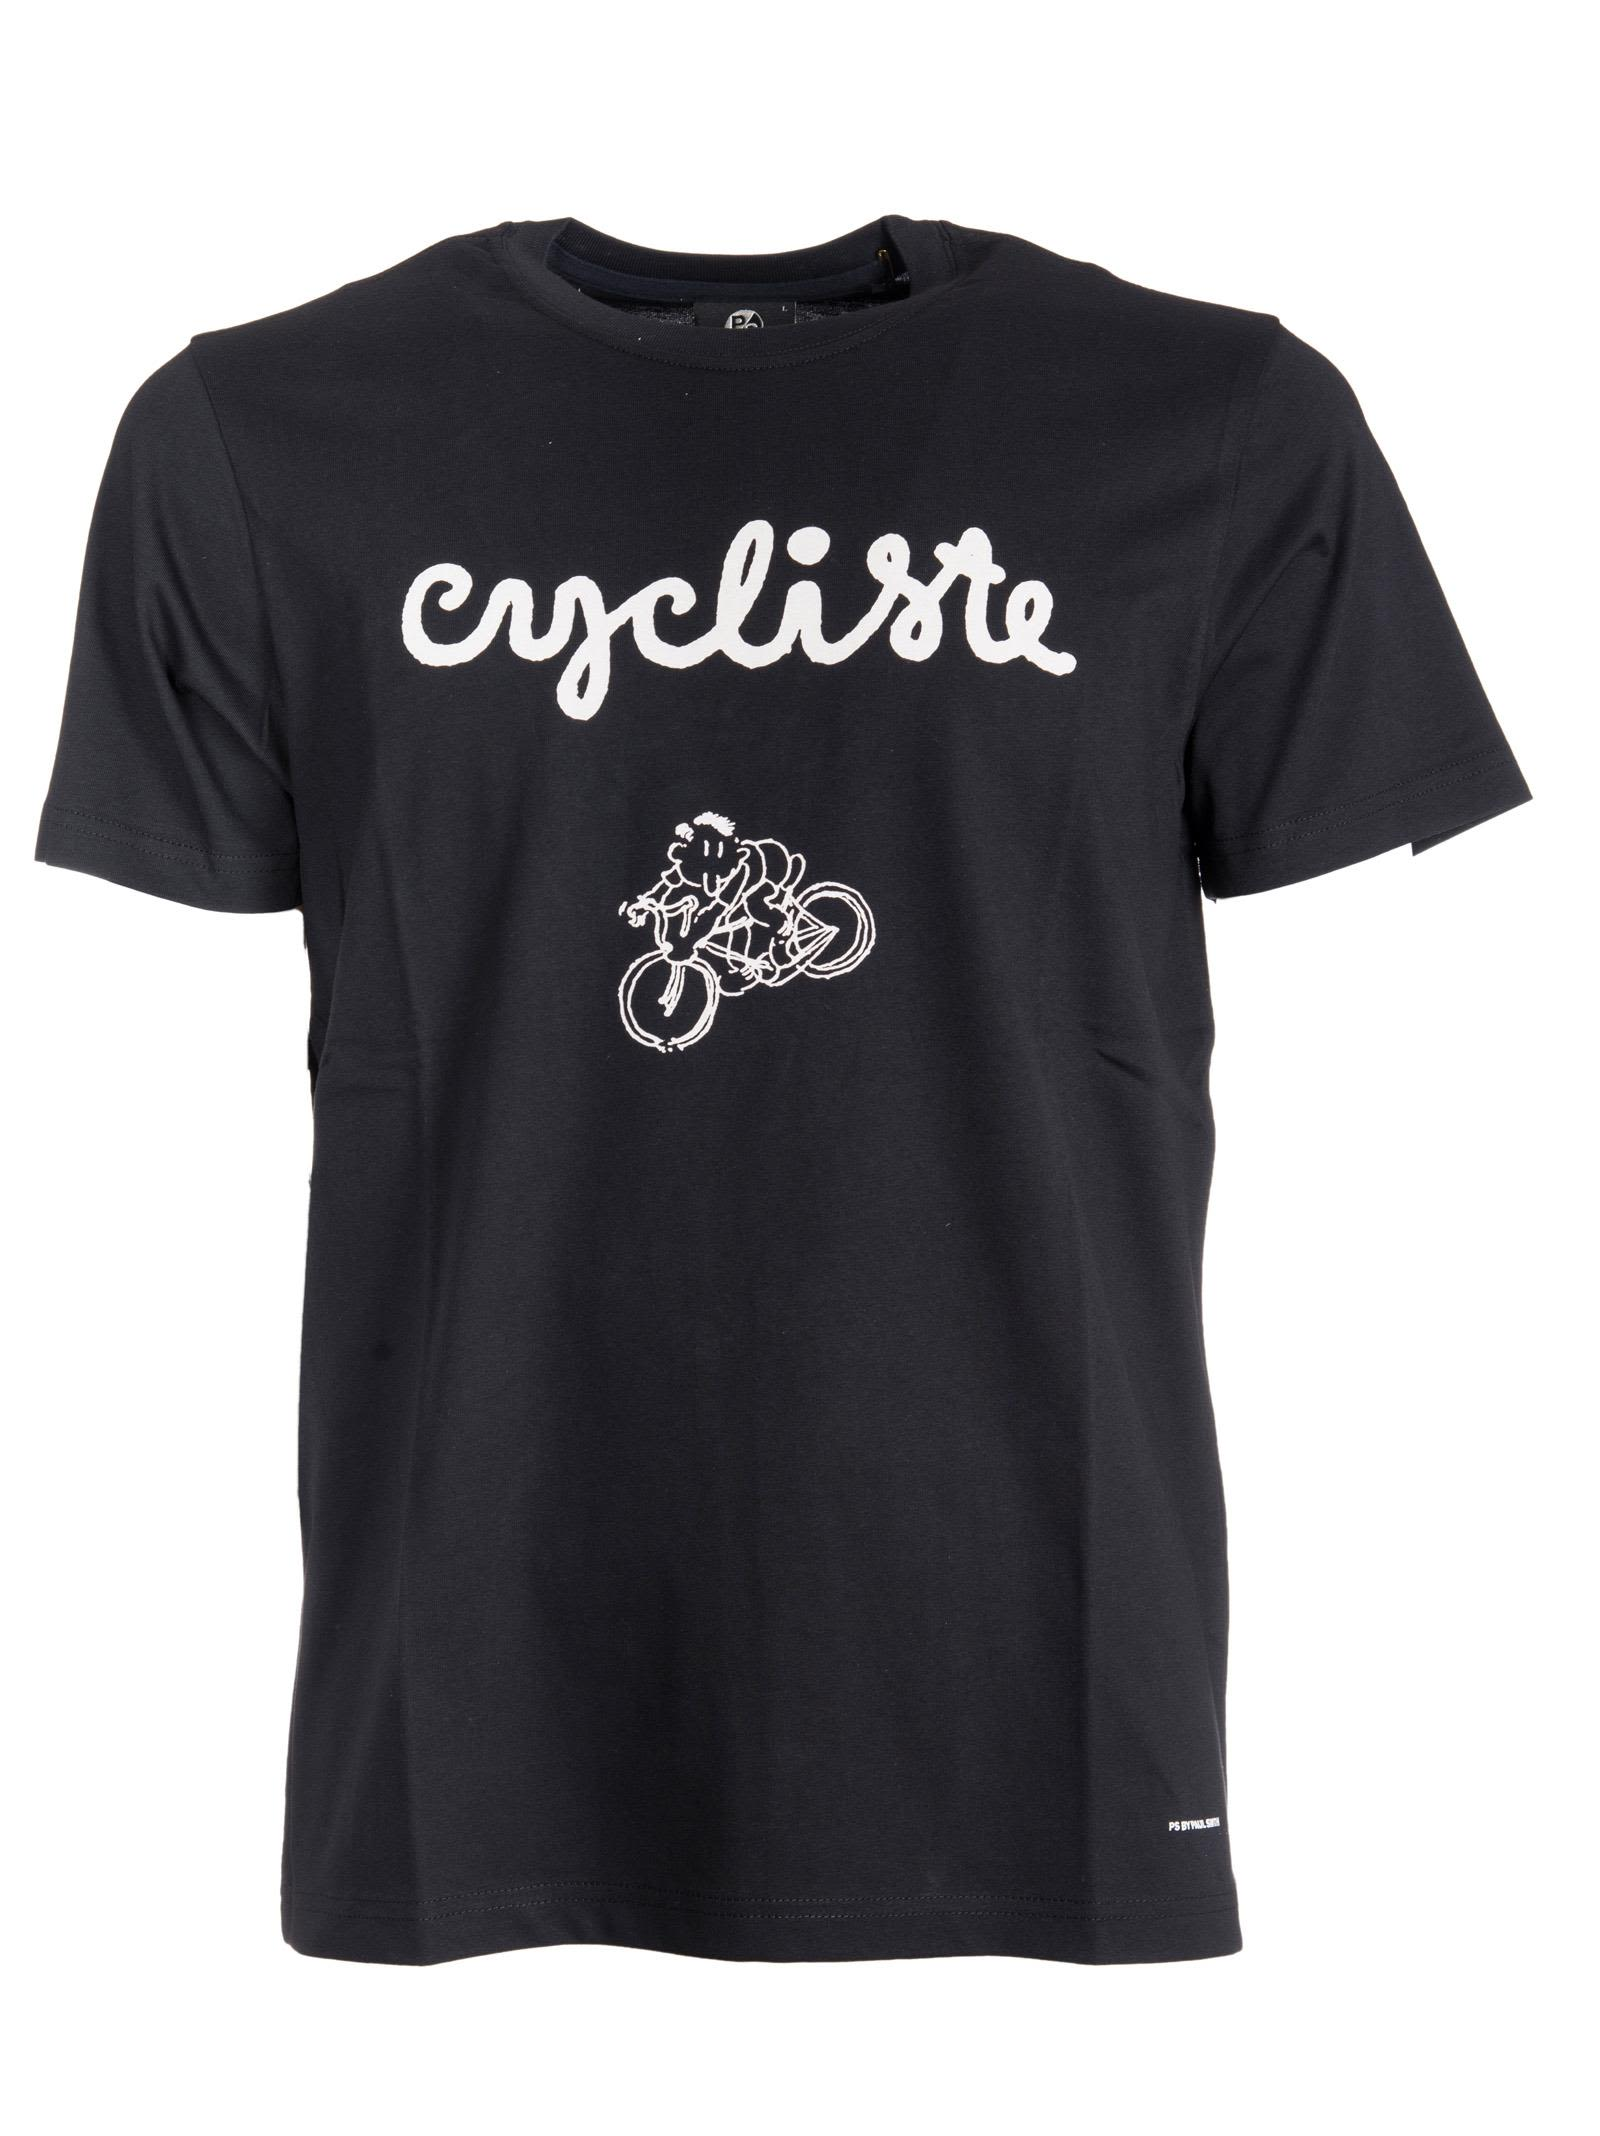 Paul Smith Cycliste Print T-shirt